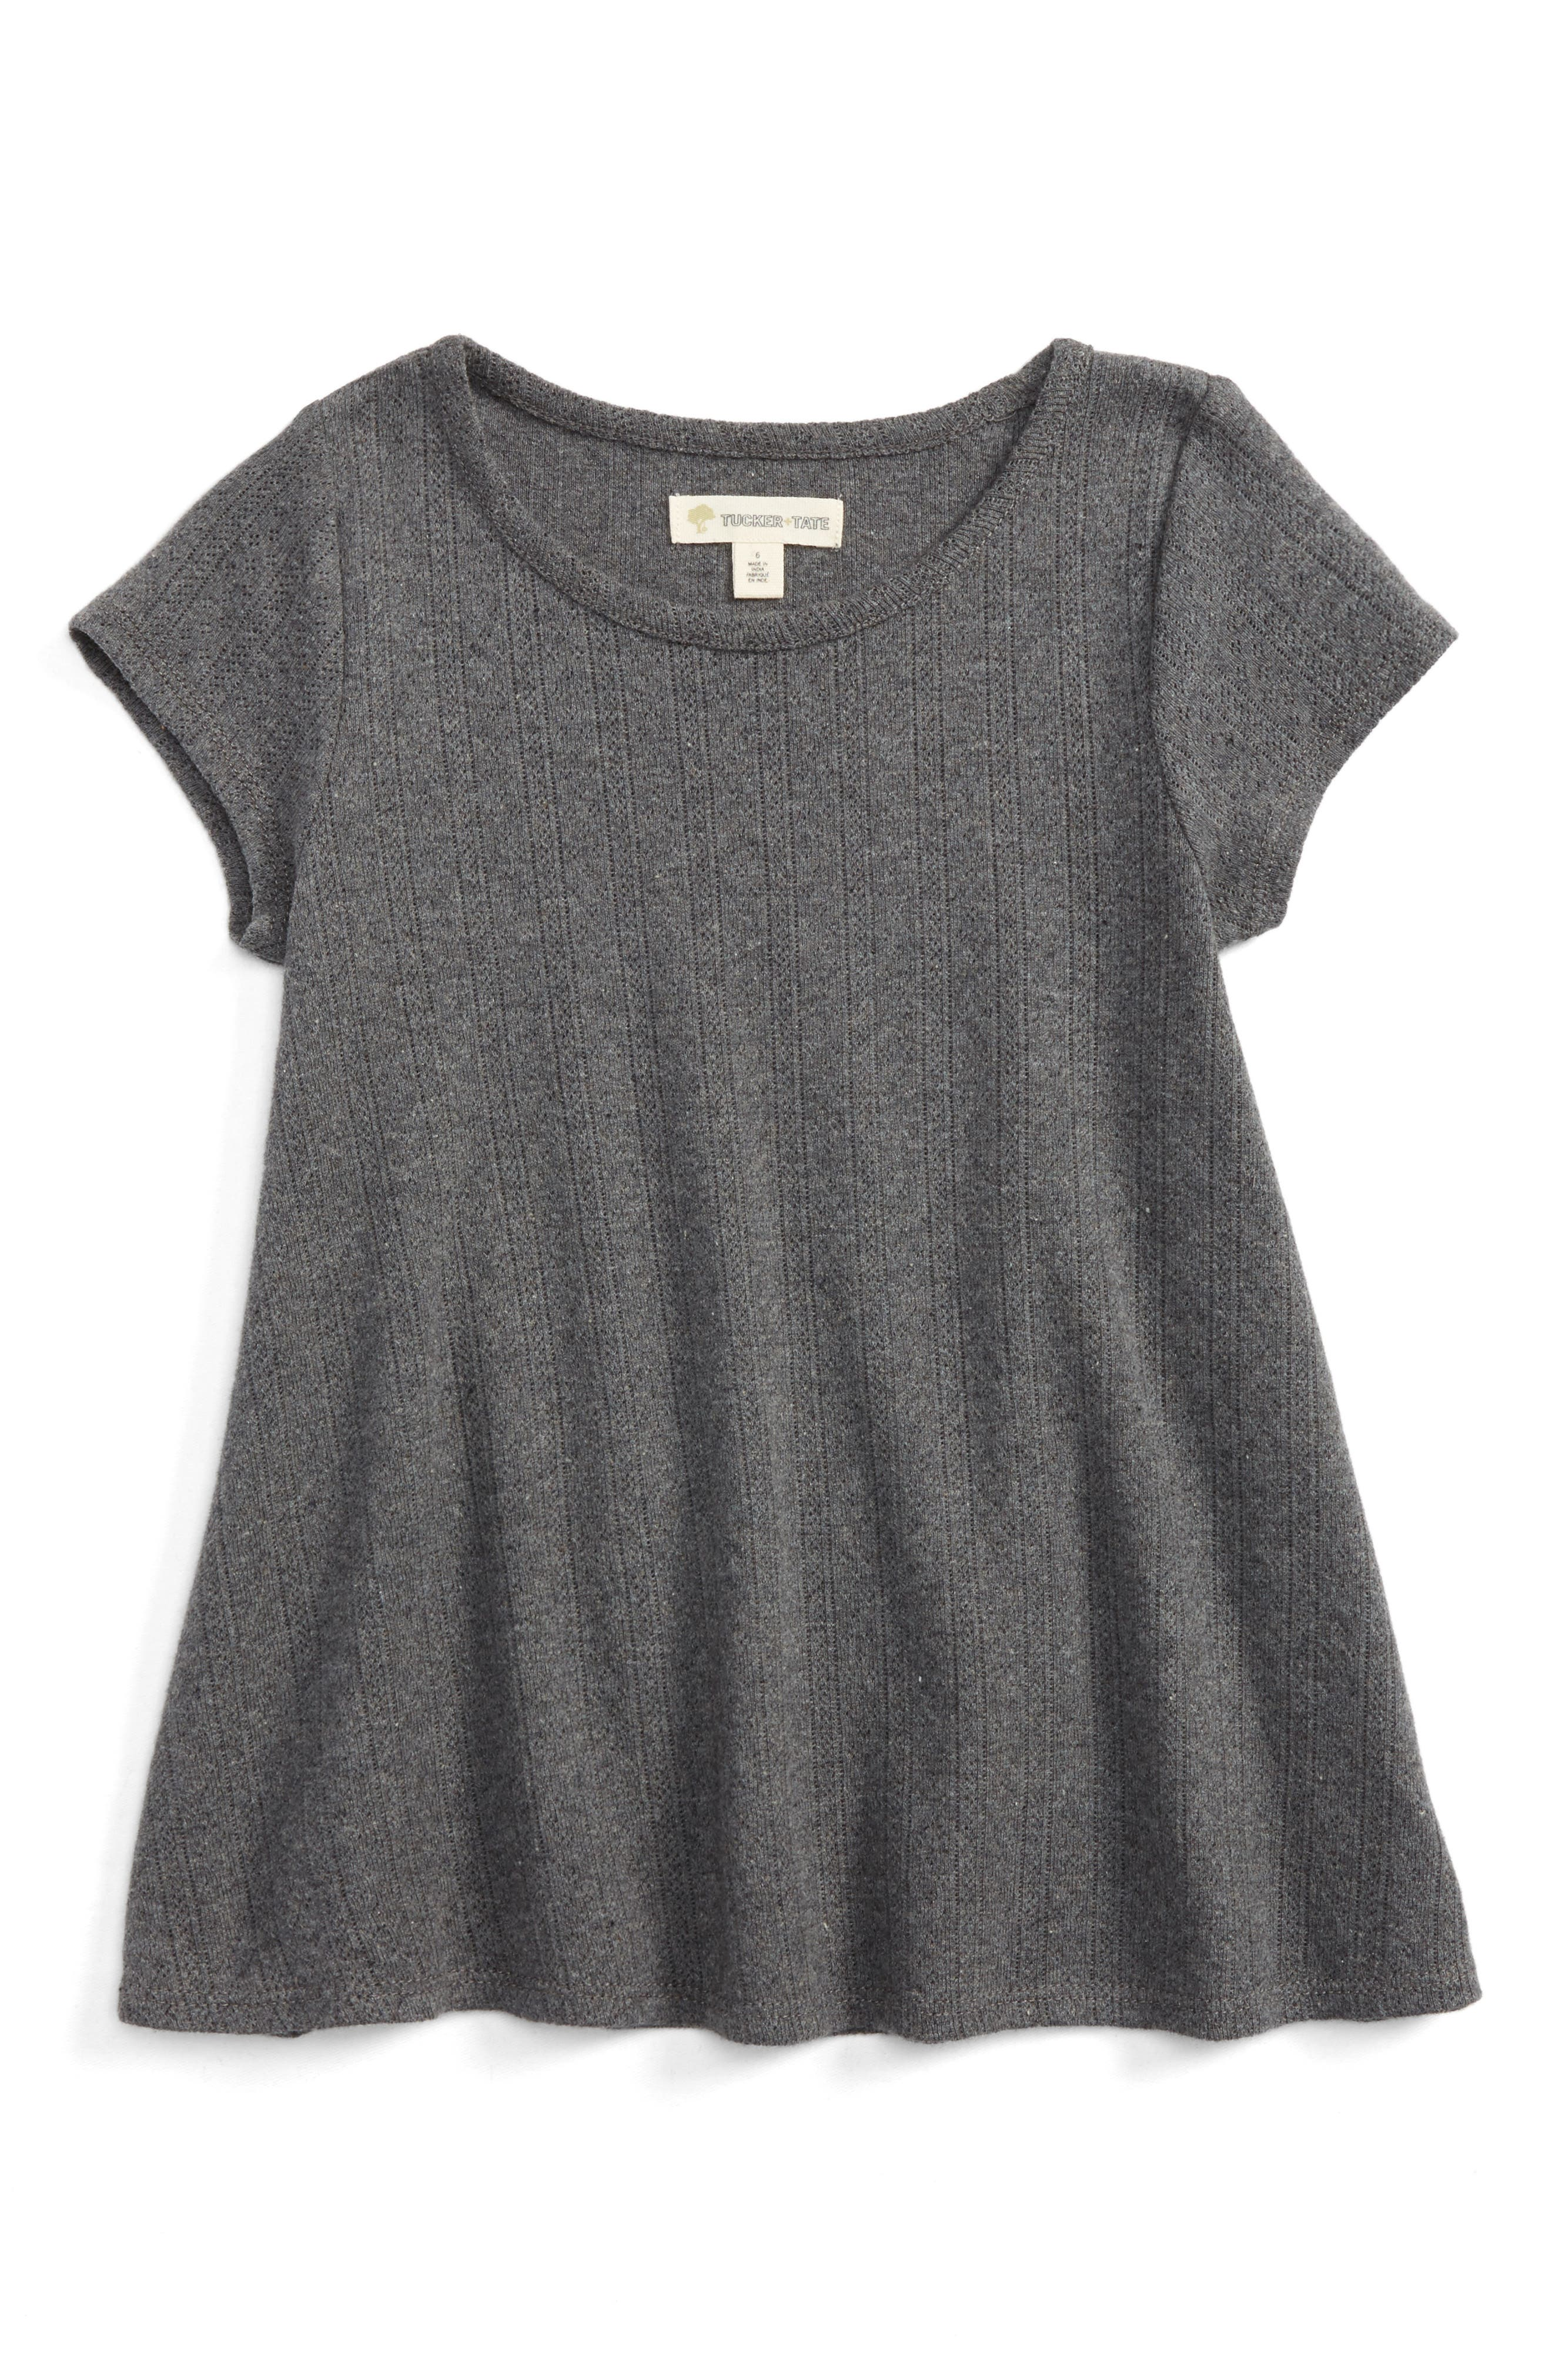 TUCKER + TATE Pointelle Tee